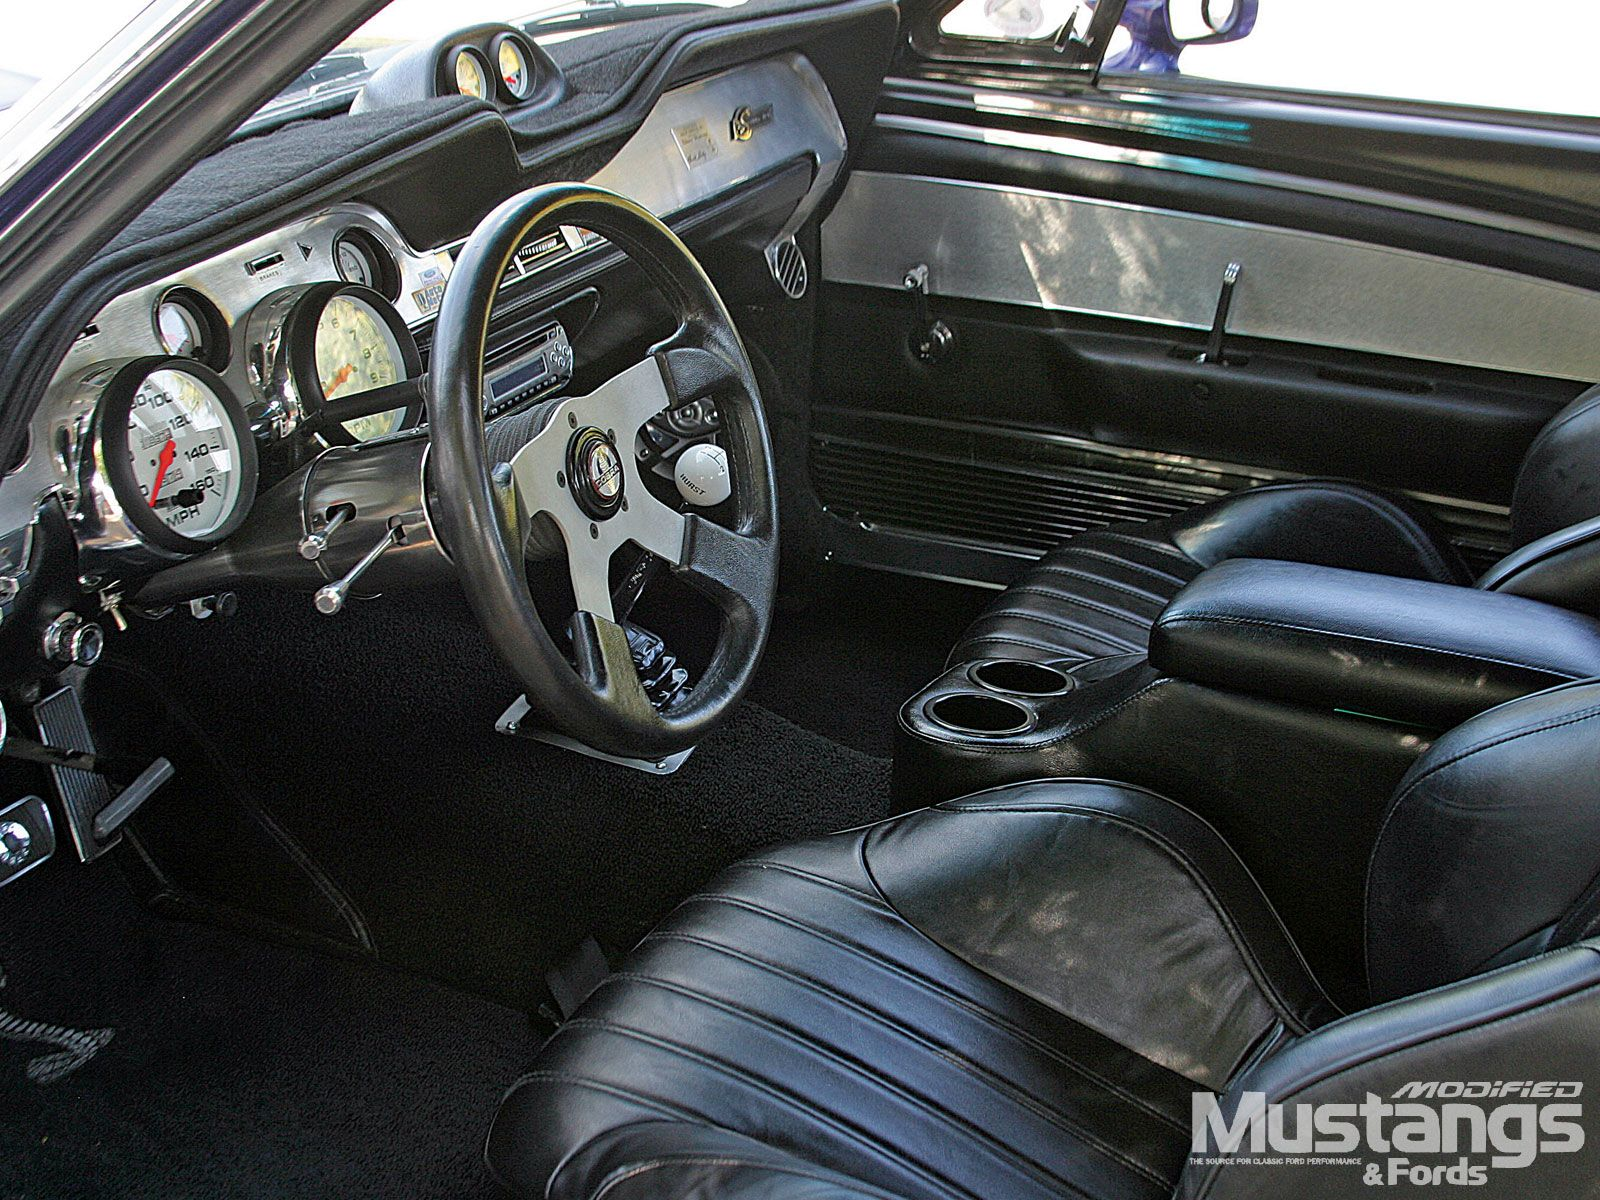 Interiors That Dash 67 Coupe 1967 Mustang Coupe Mustang 67 Mustang Coupe